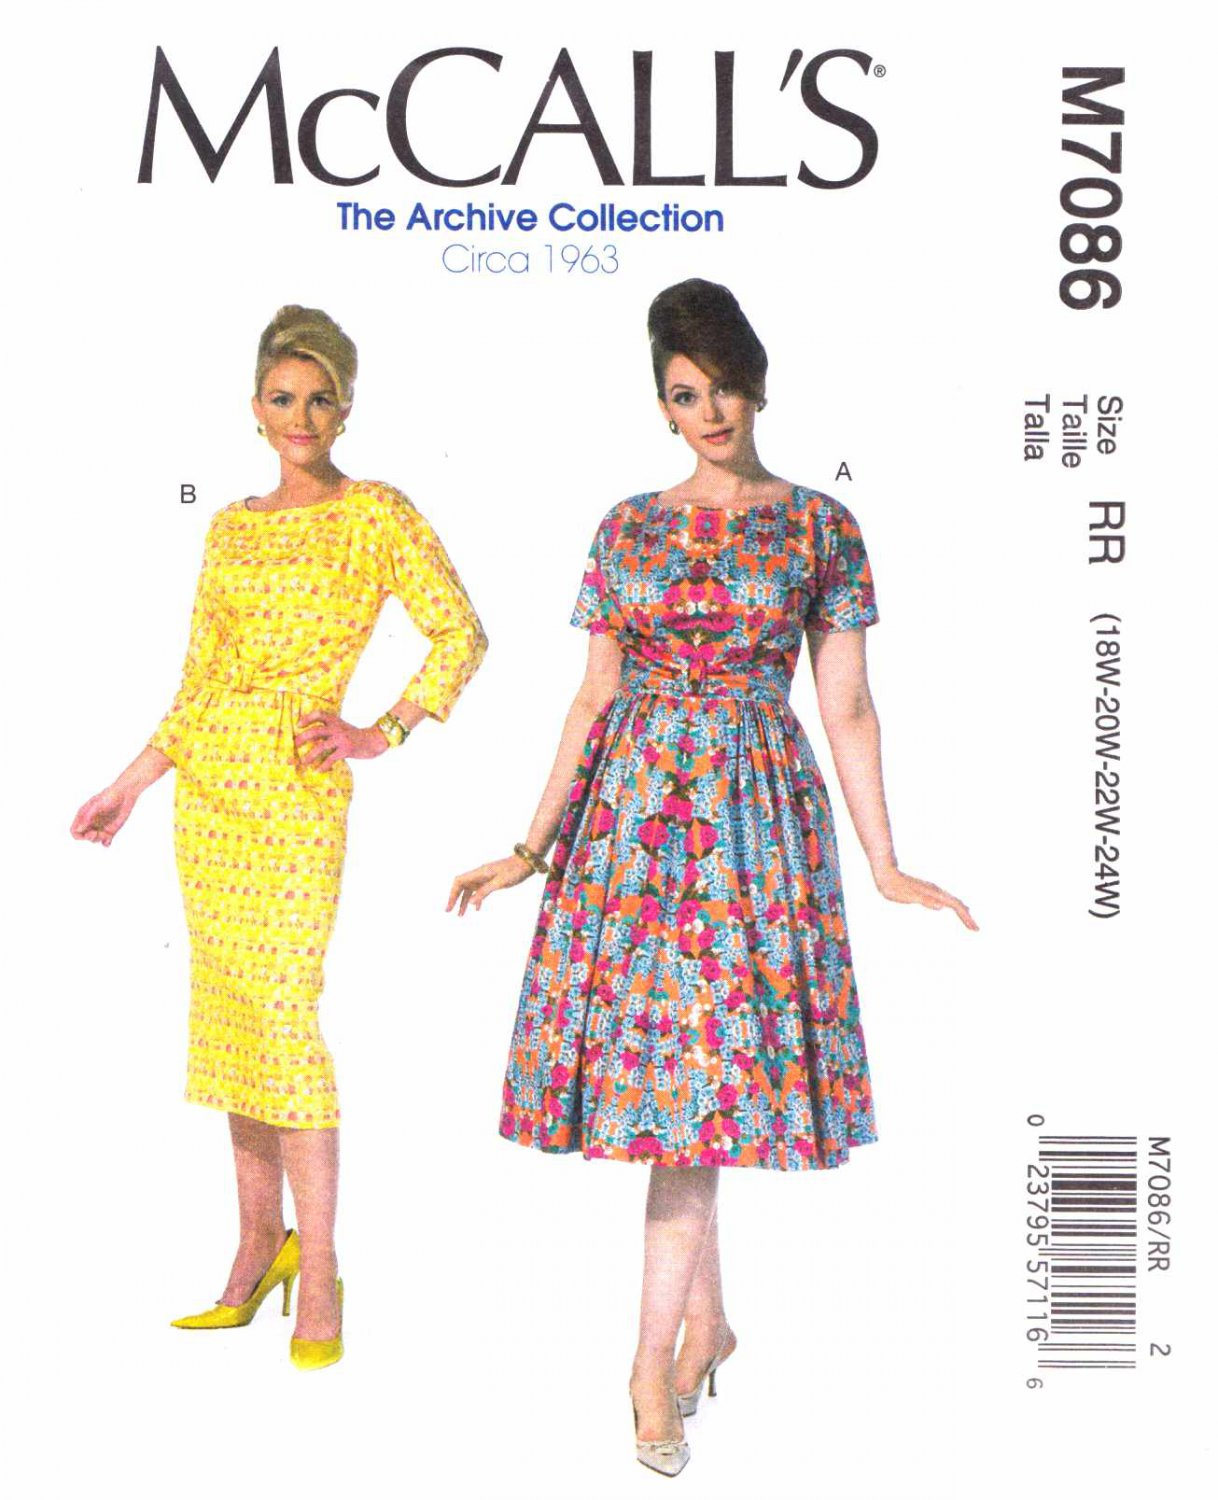 McCall's Sewing Pattern 7086 Women's Plus Size 18W-24W Vintage Style Straight Full Skirt Dresses